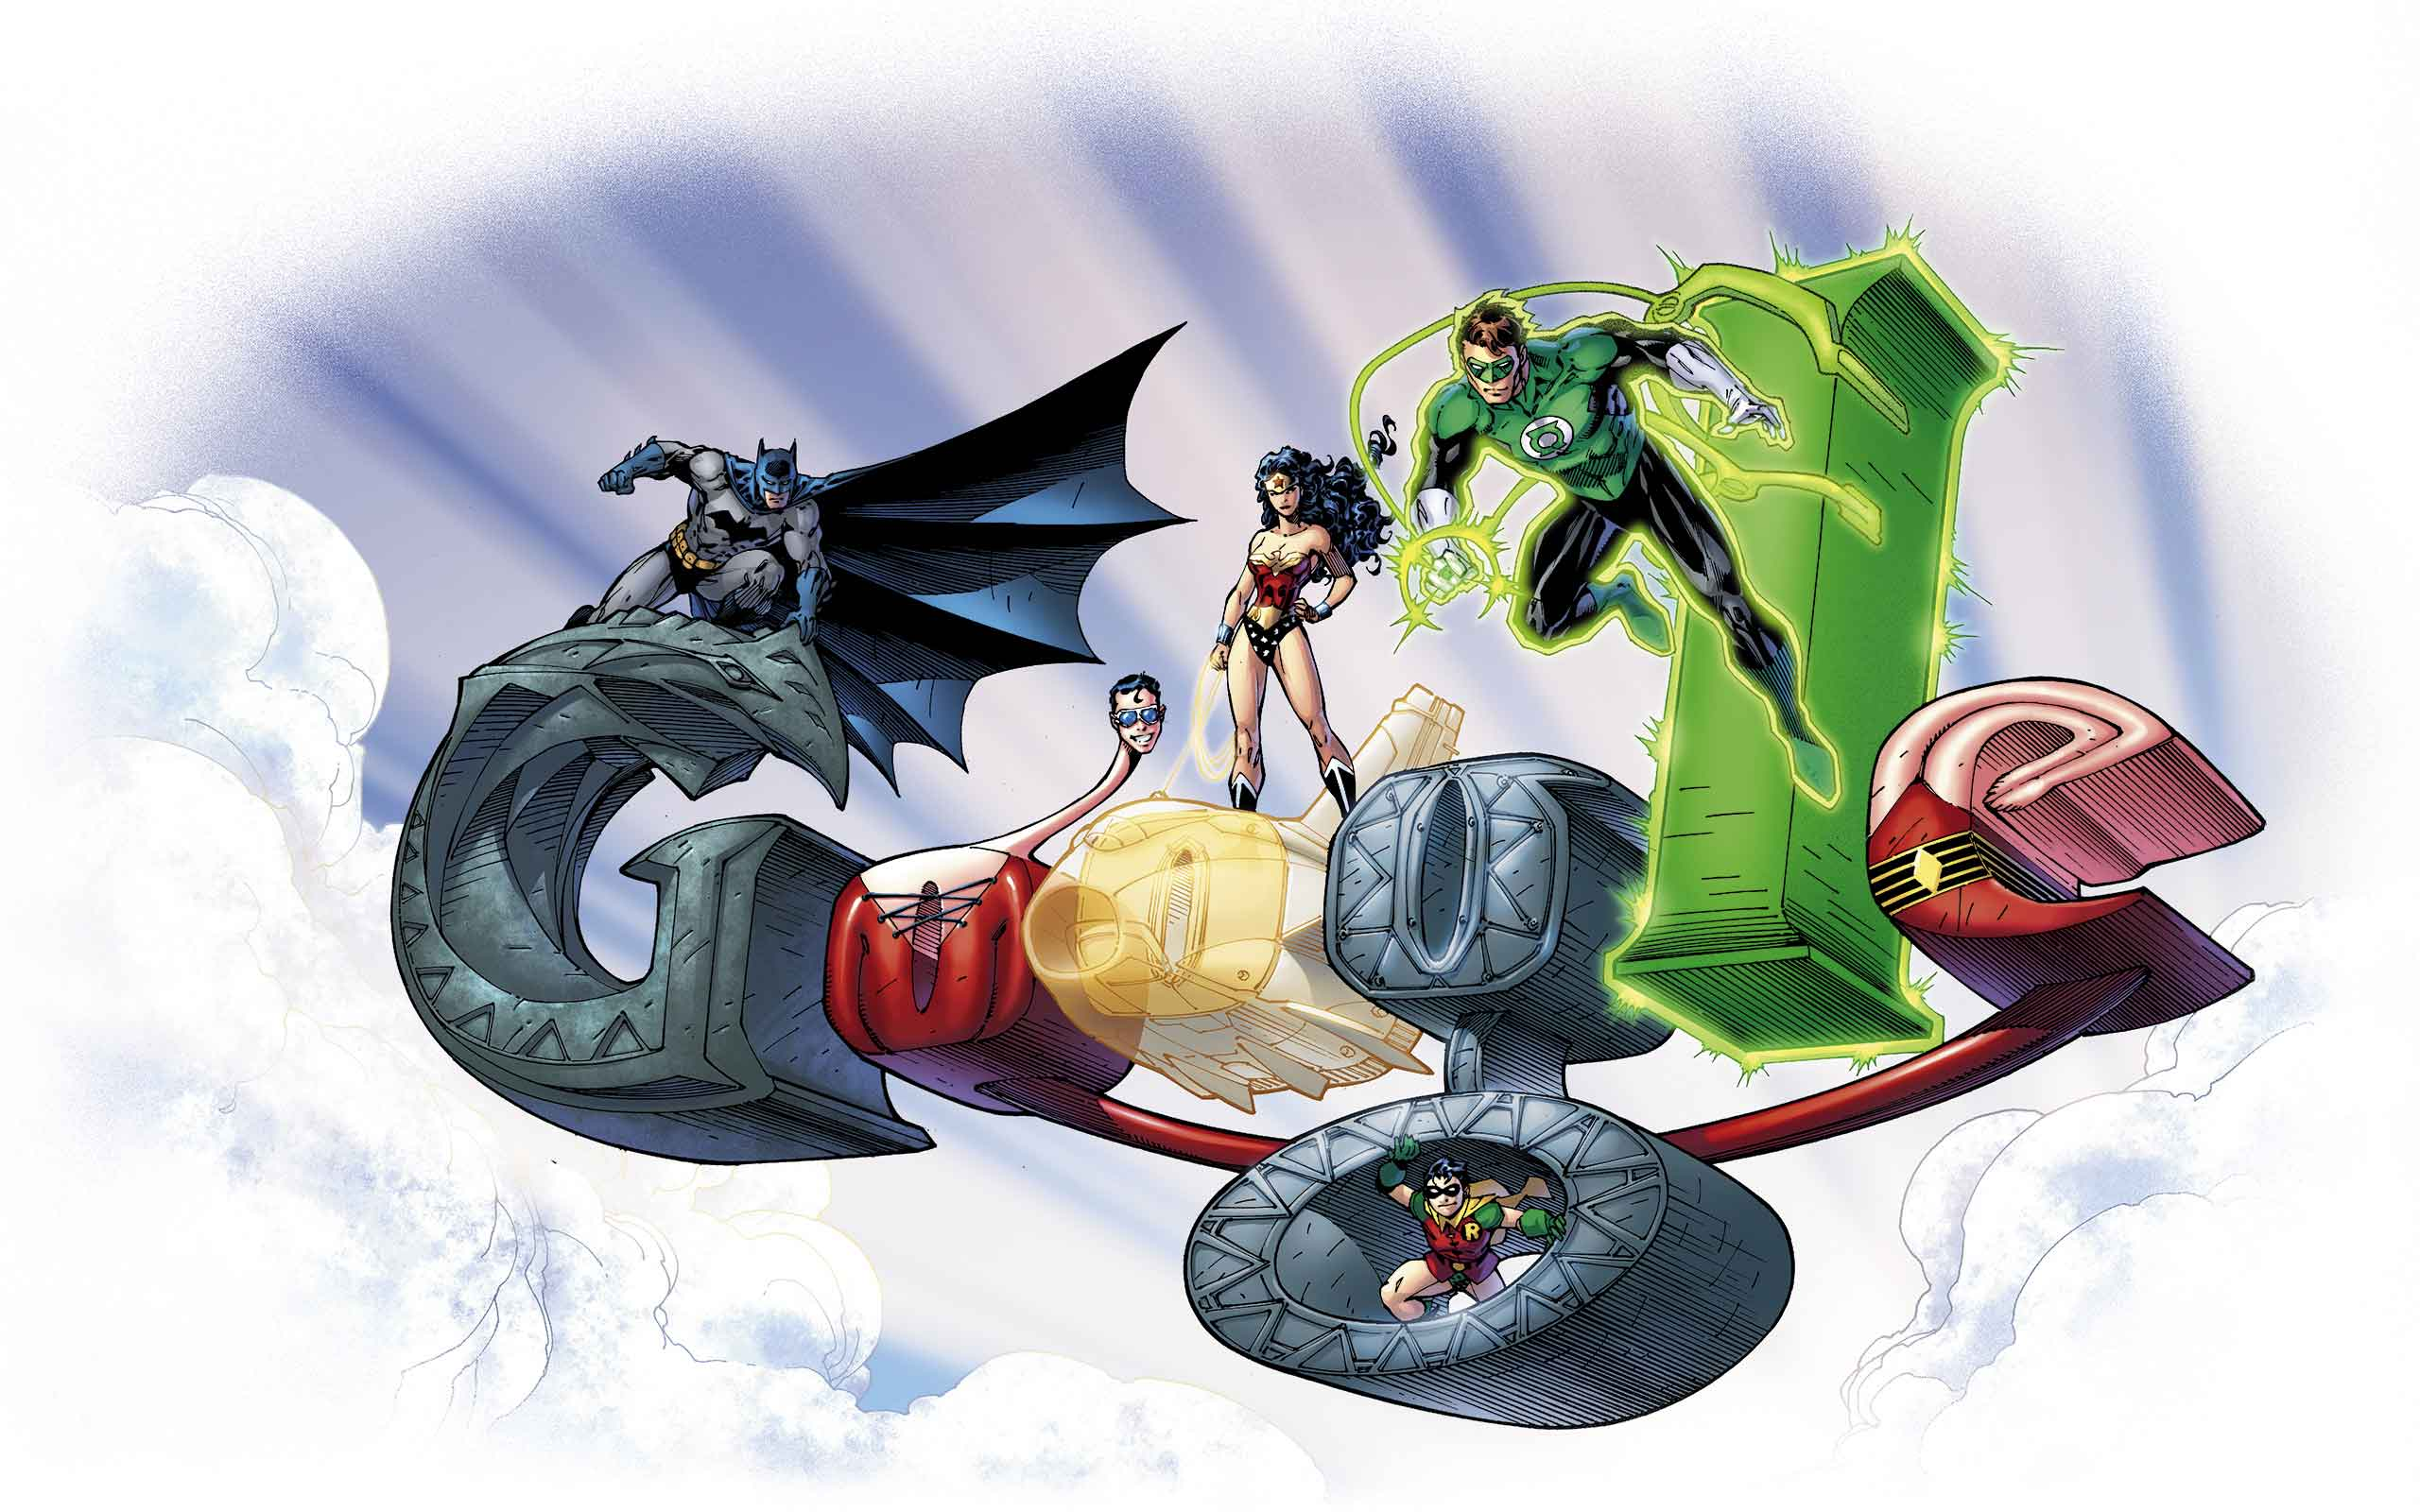 google_art_jim_lee_doodle_comic-con_2009_dc.jpg